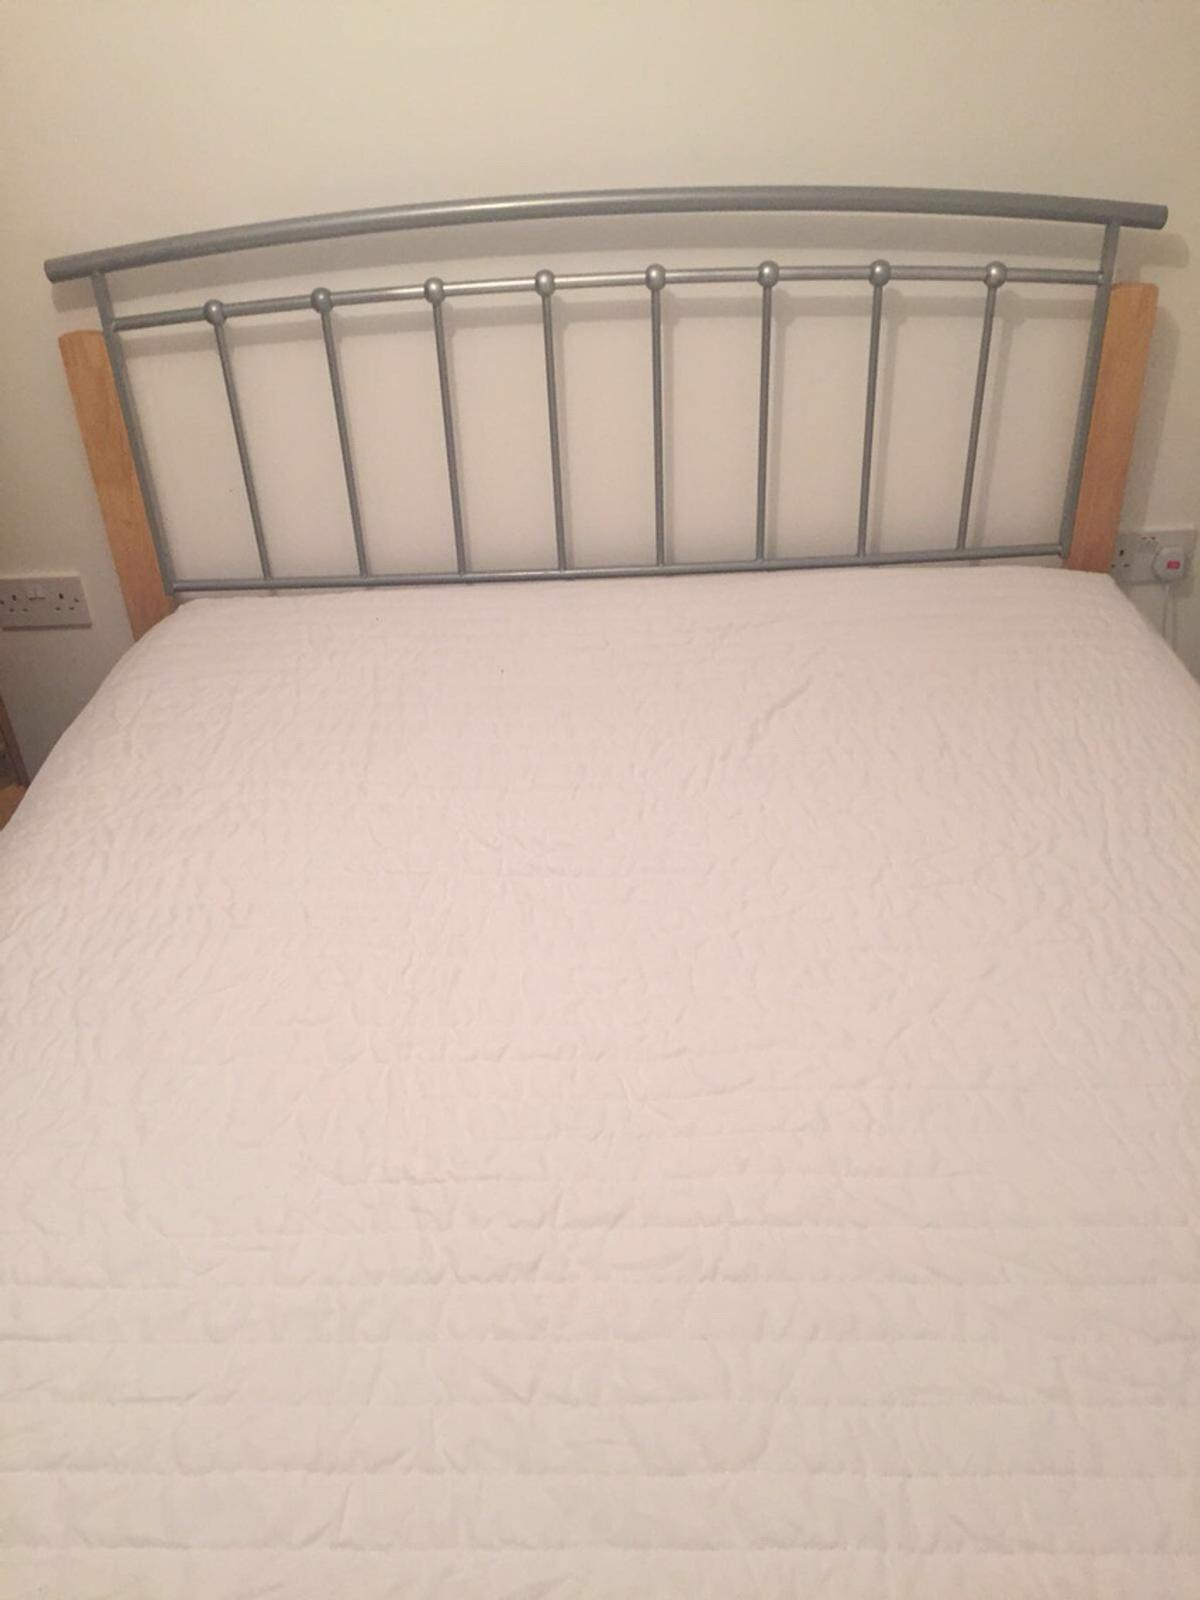 Second Hand King Size Mattress King Size Bed Wood And Metal Frame Mattress